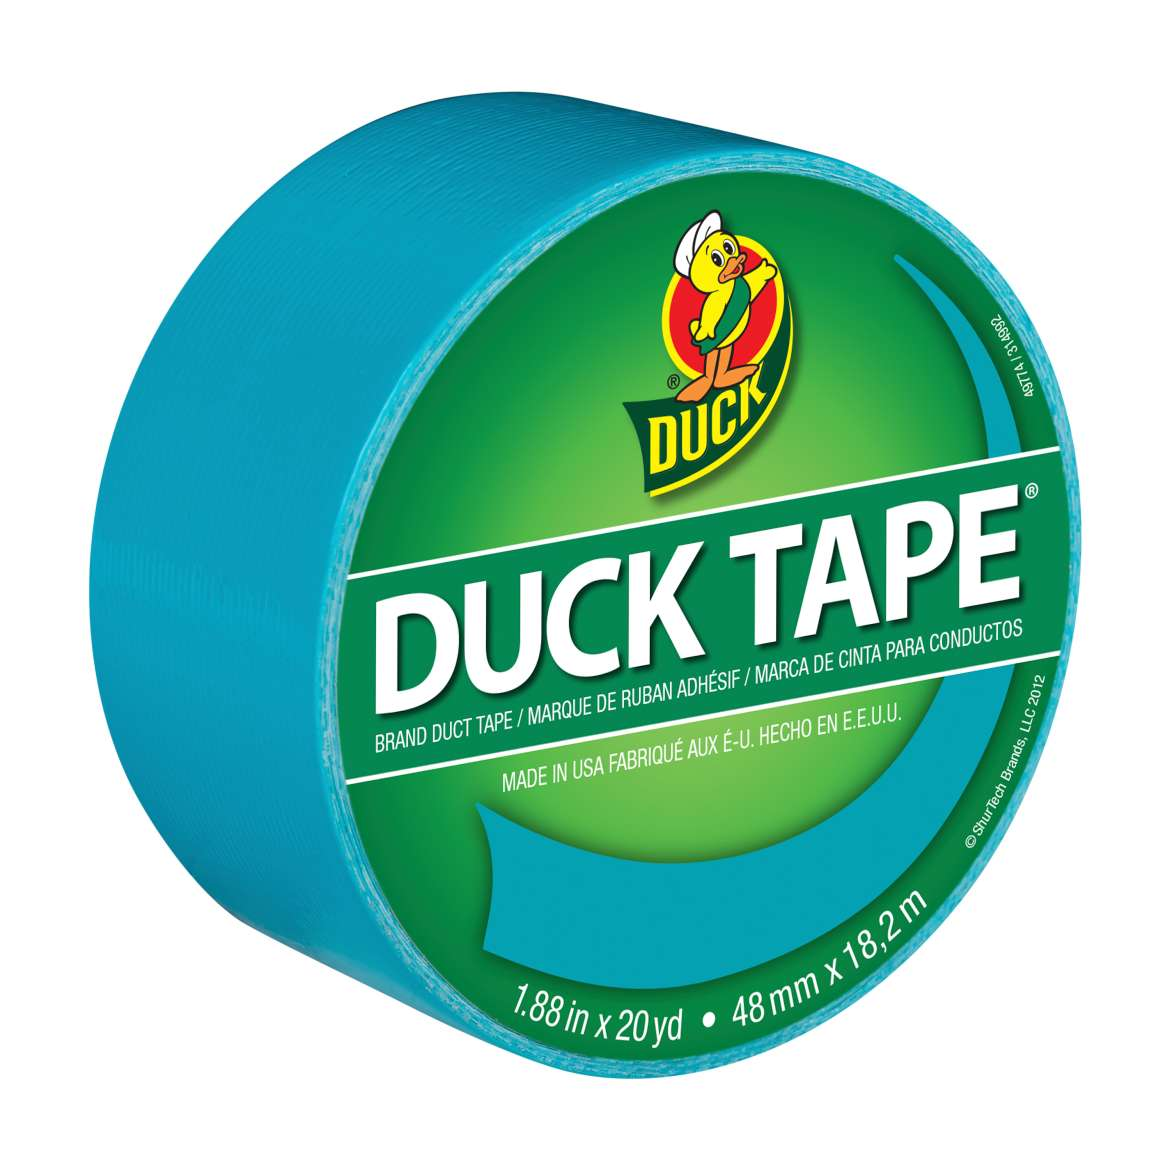 Color Duck Tape® Brand Duct Tape - Aqua, 1.88 in. x 20 yd. Image